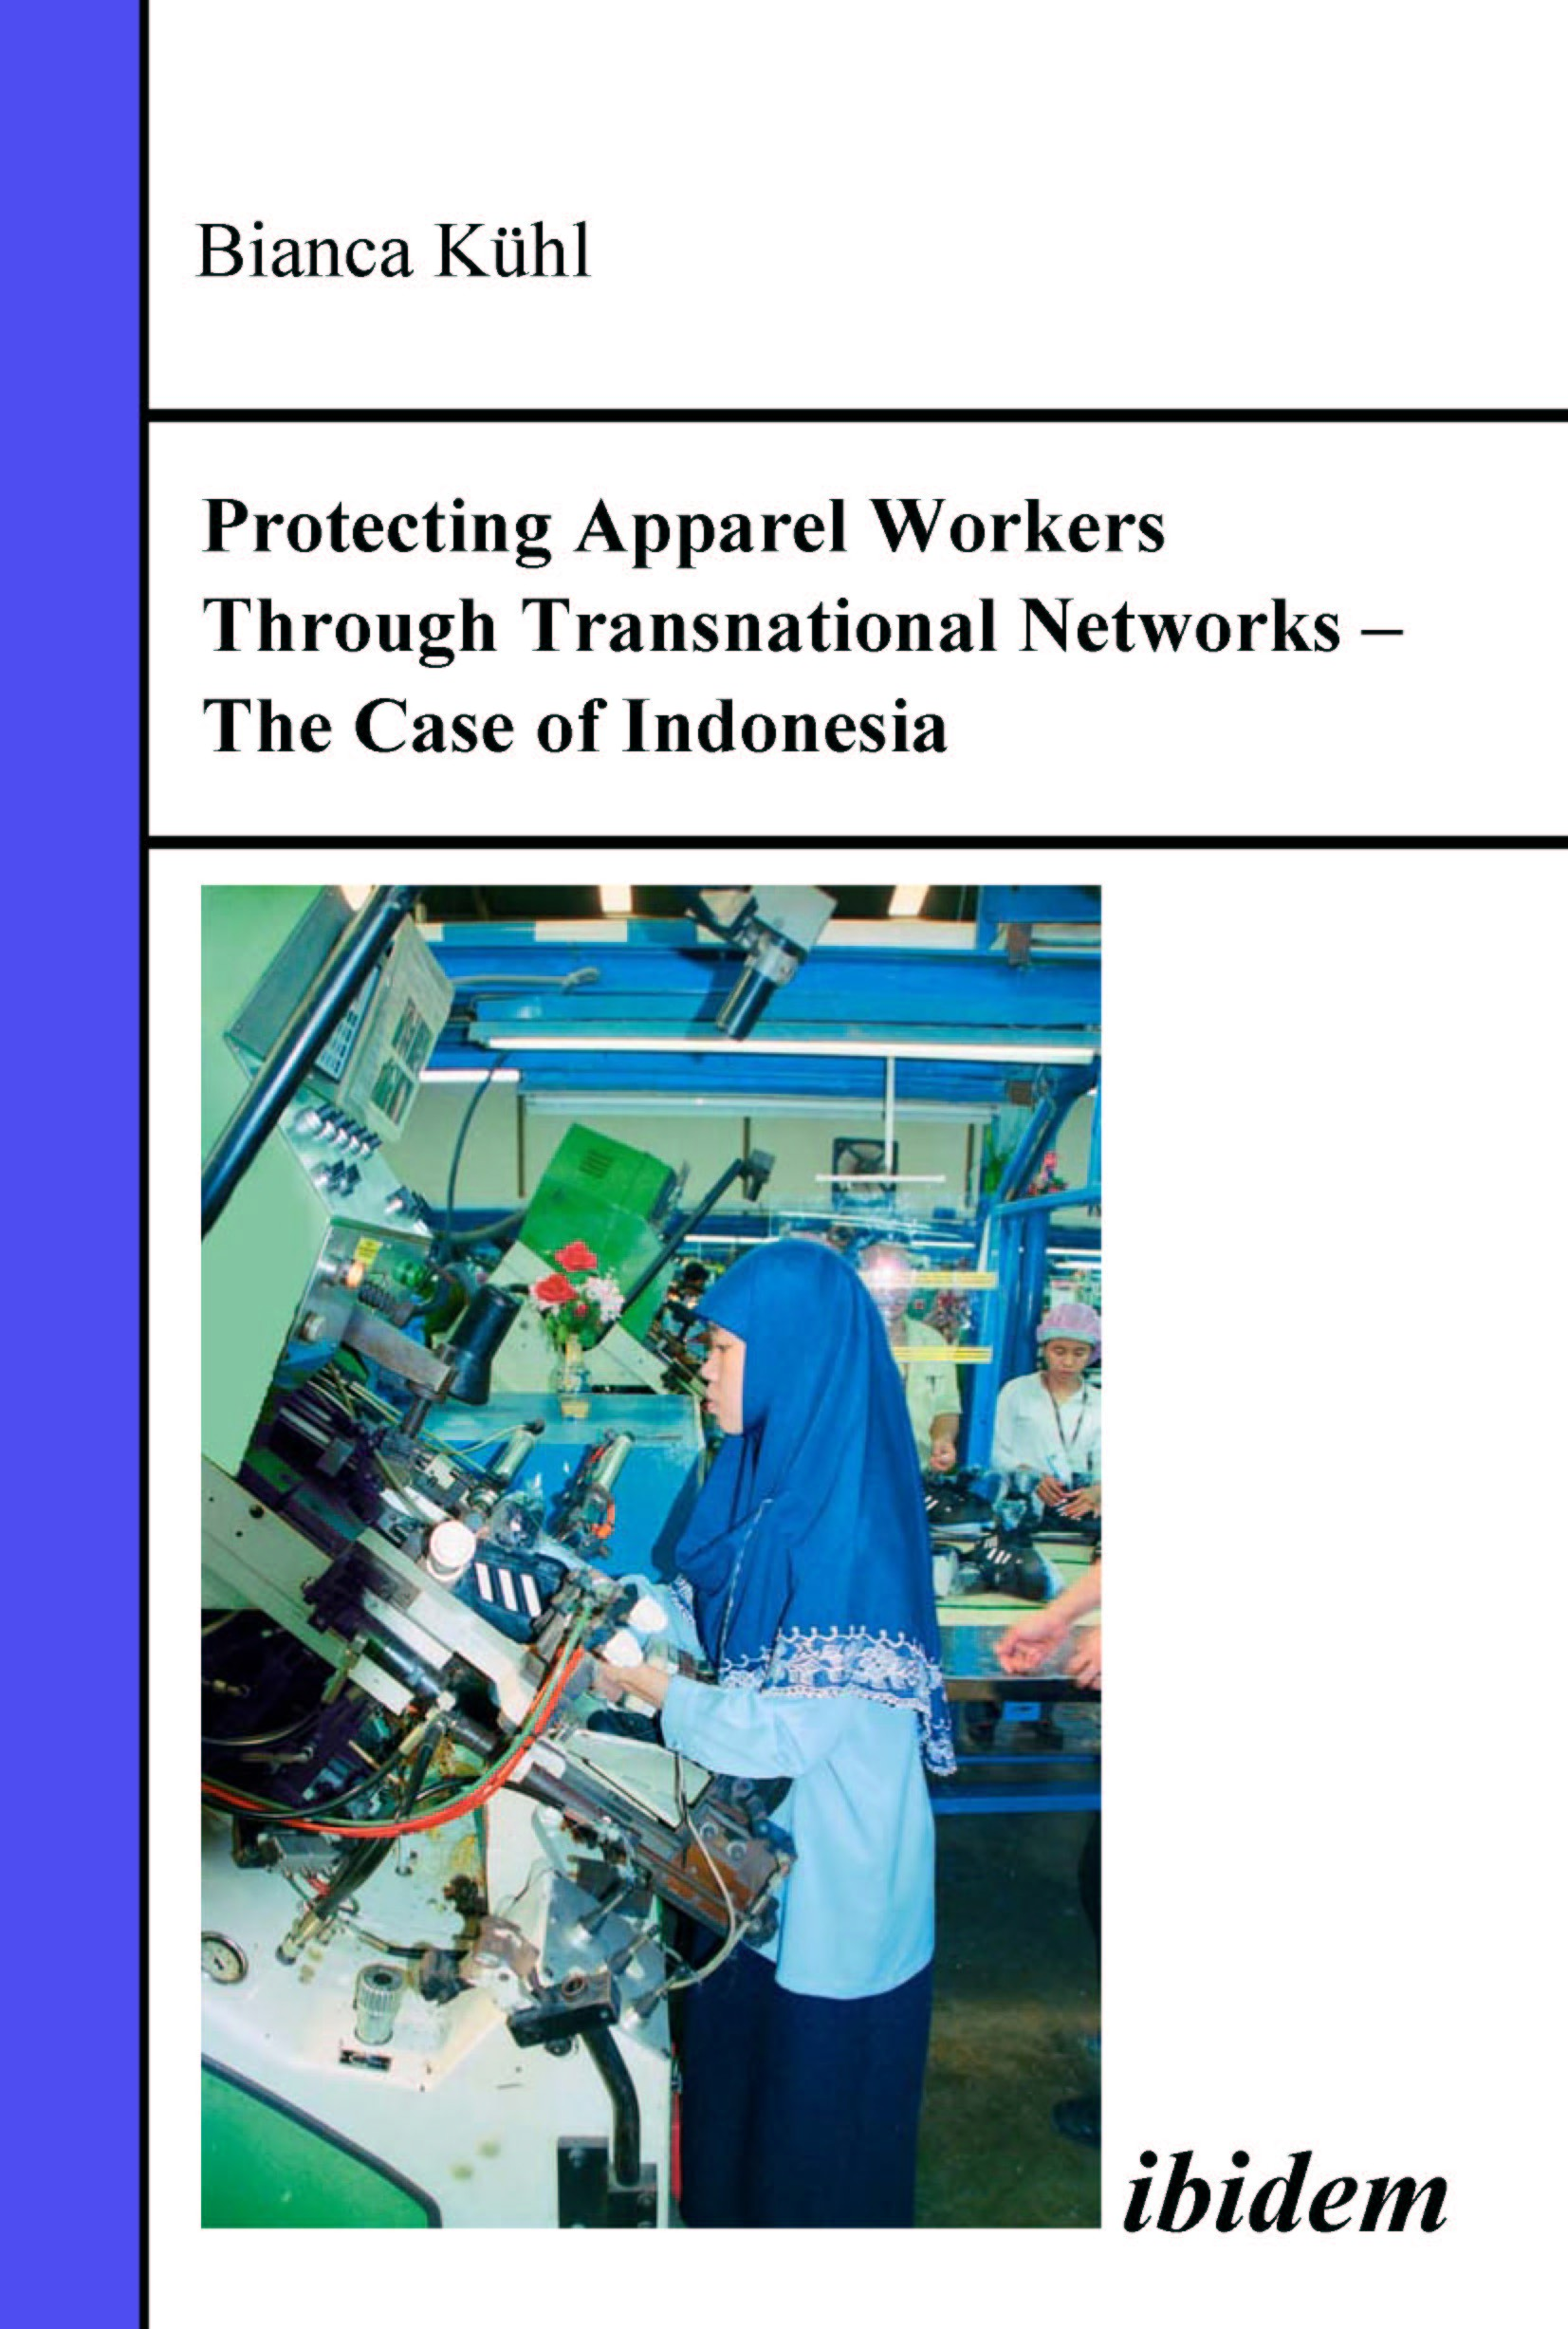 Protecting Apparel Workers Through Transnational Networks